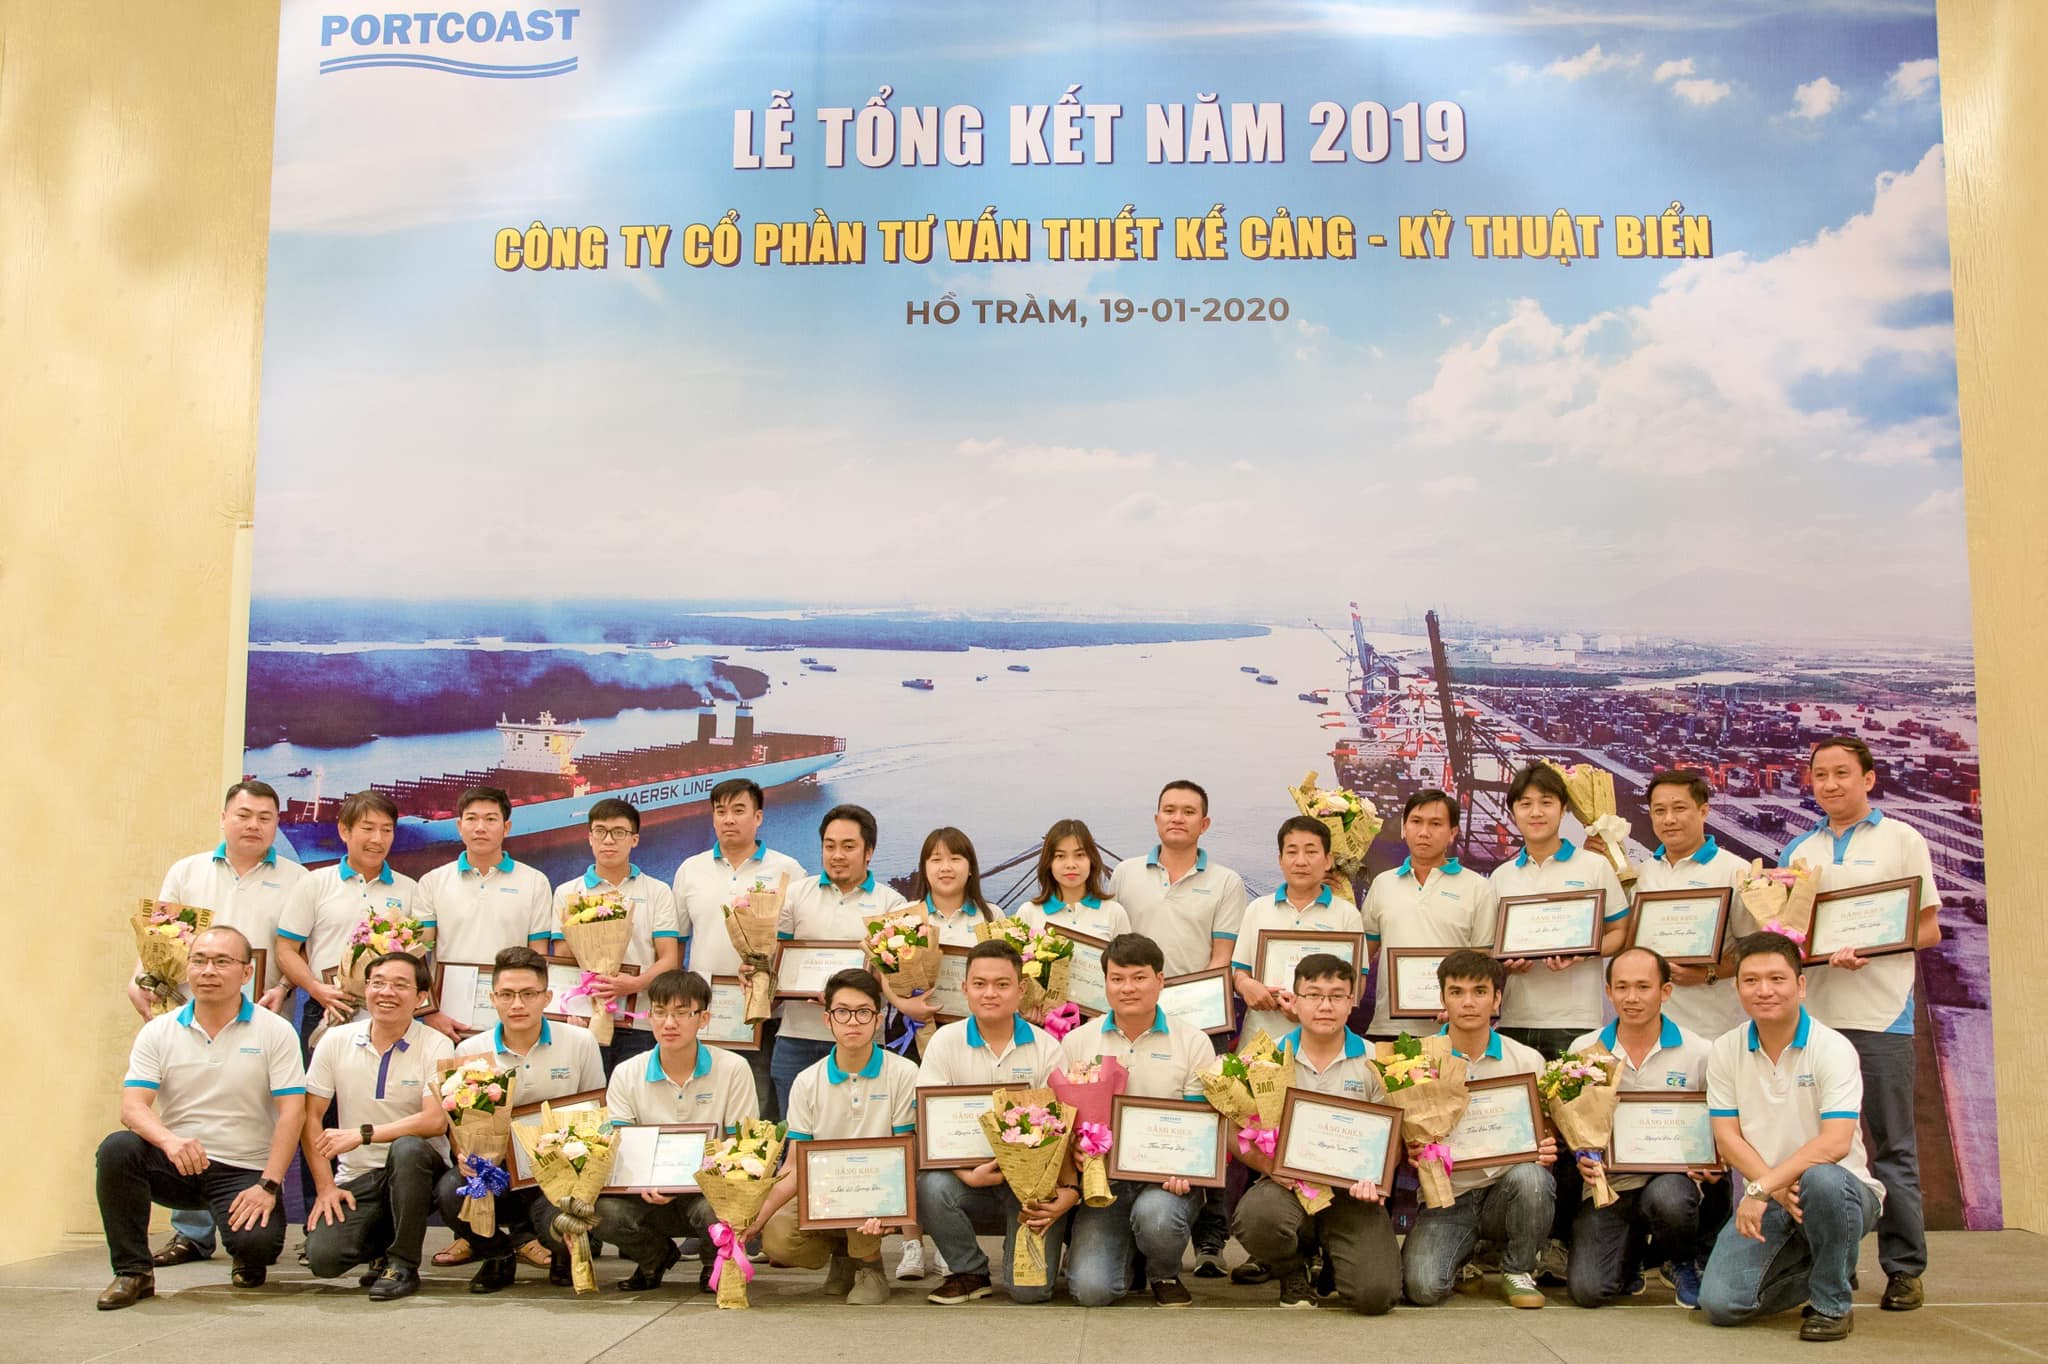 Portcoast's Year End Ceremony 2019